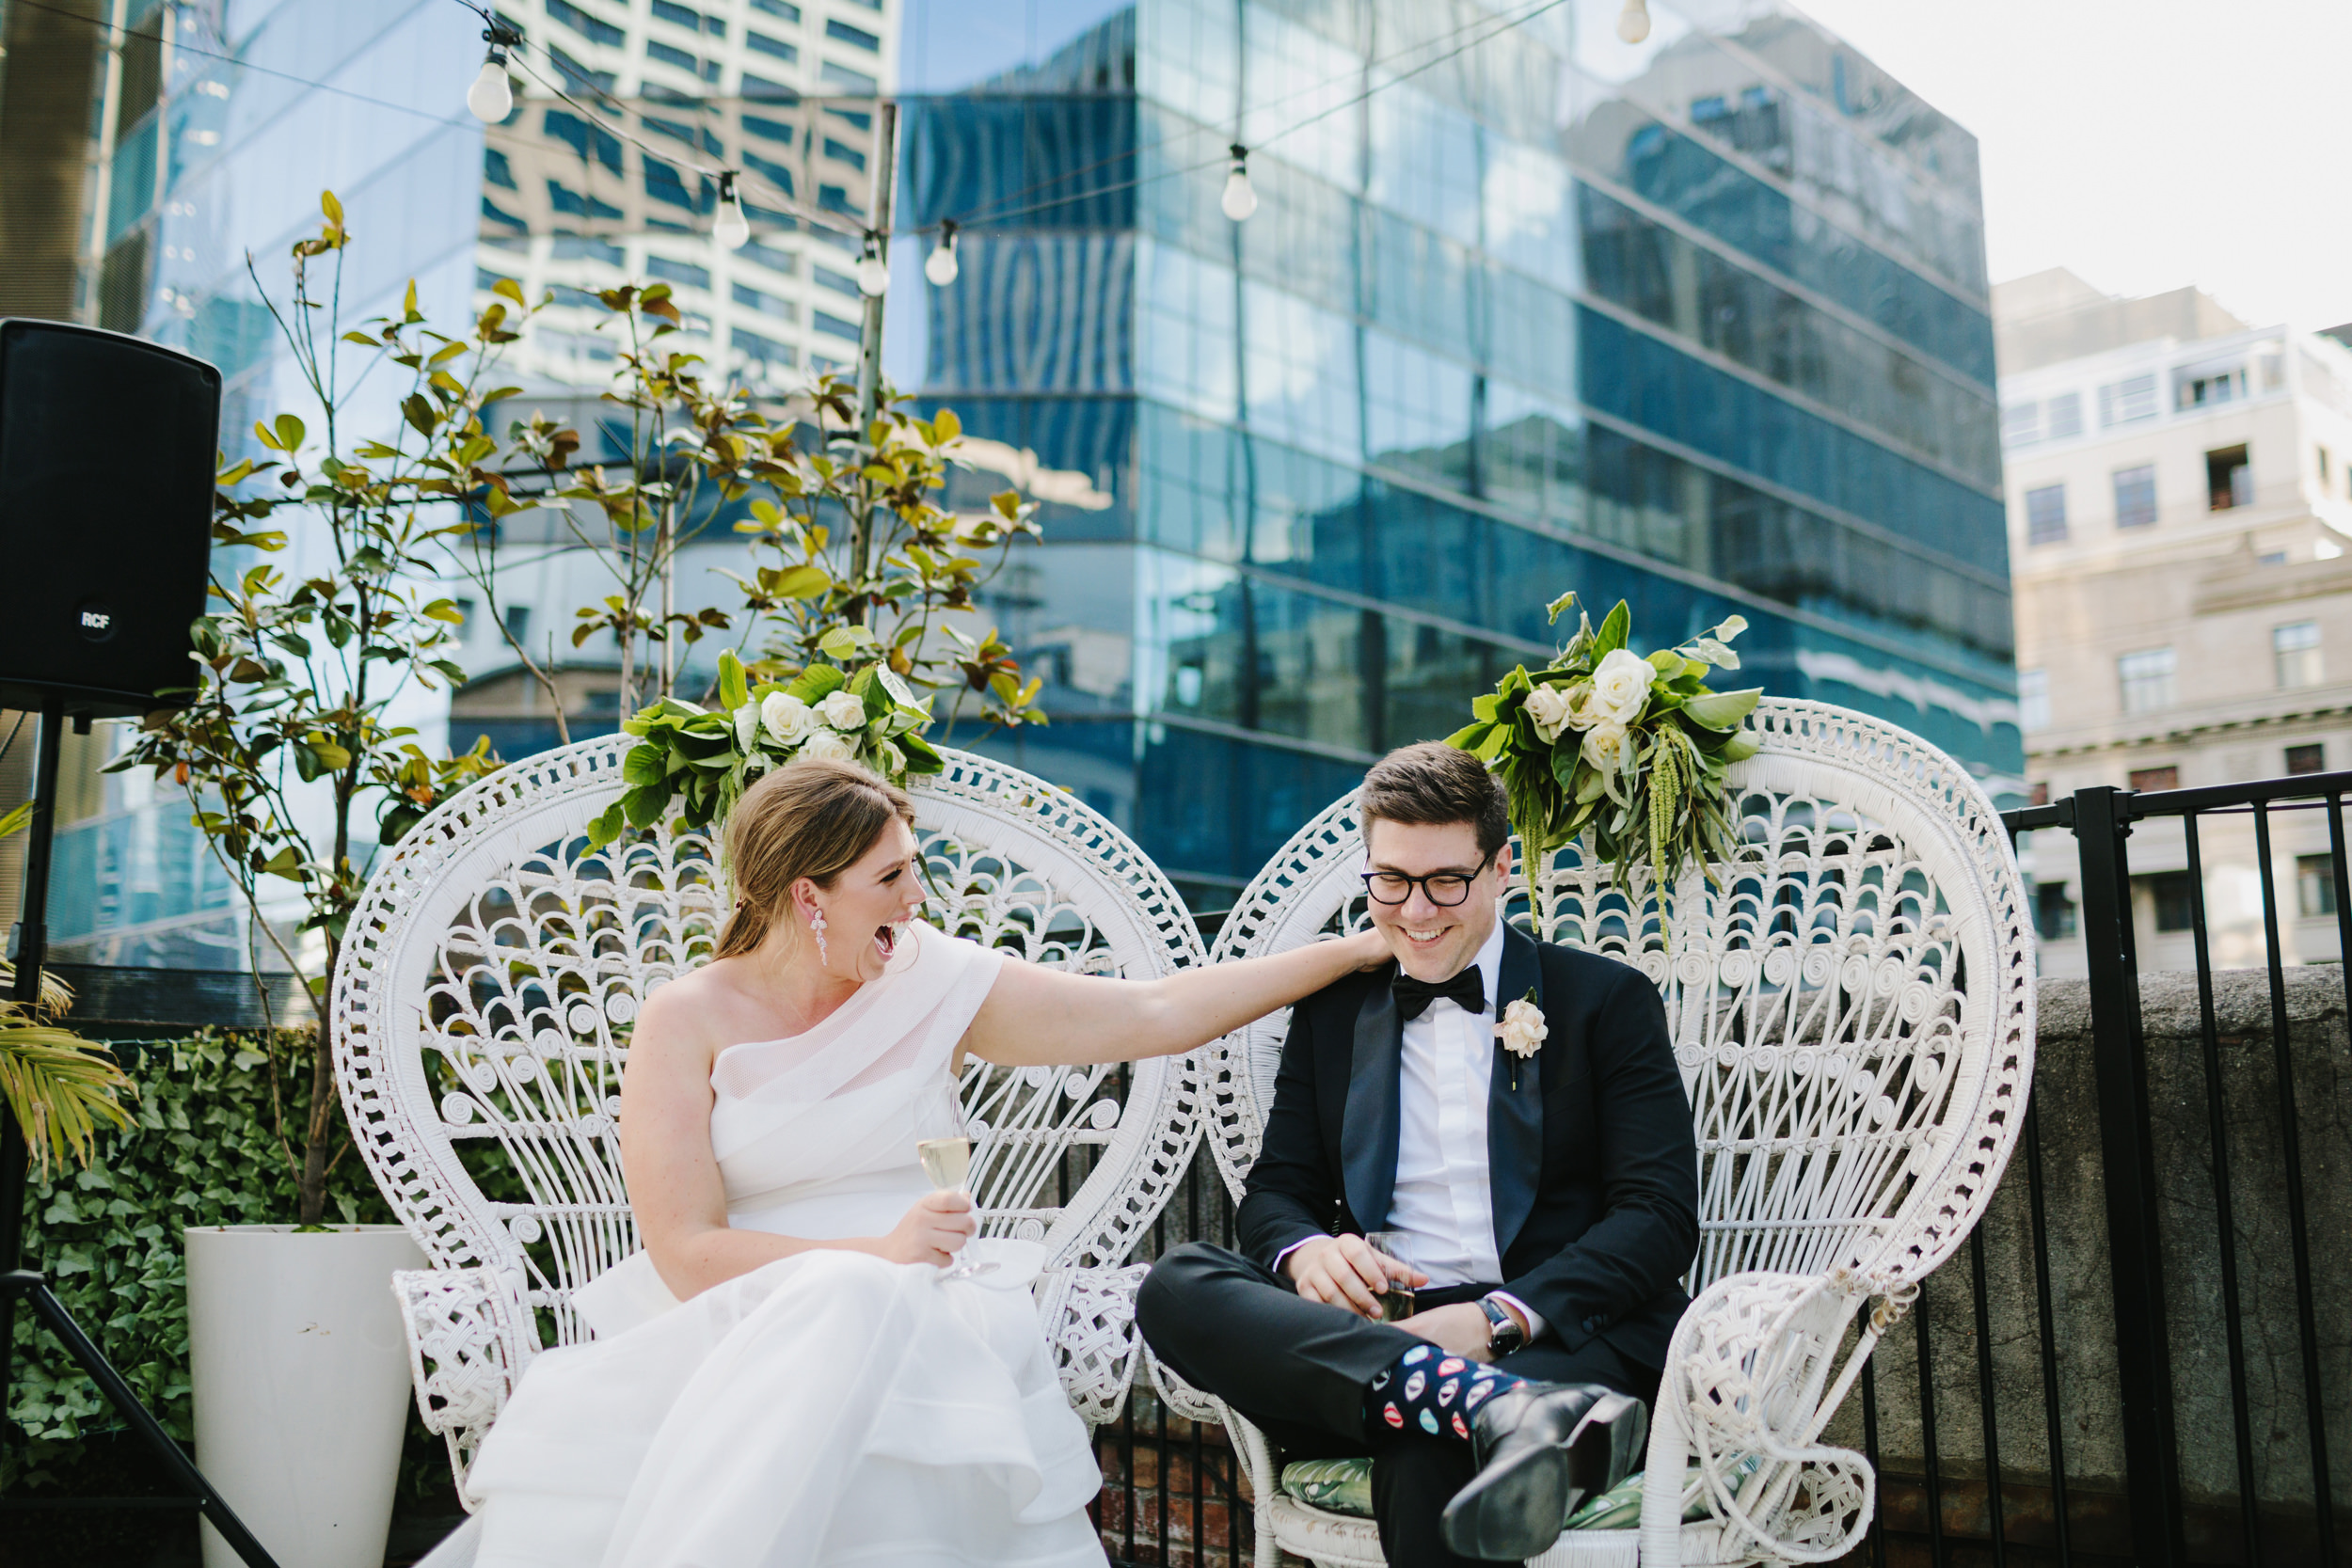 Melbourne_City_Rooftop_Wedding_Tyson_Brigette103.JPG